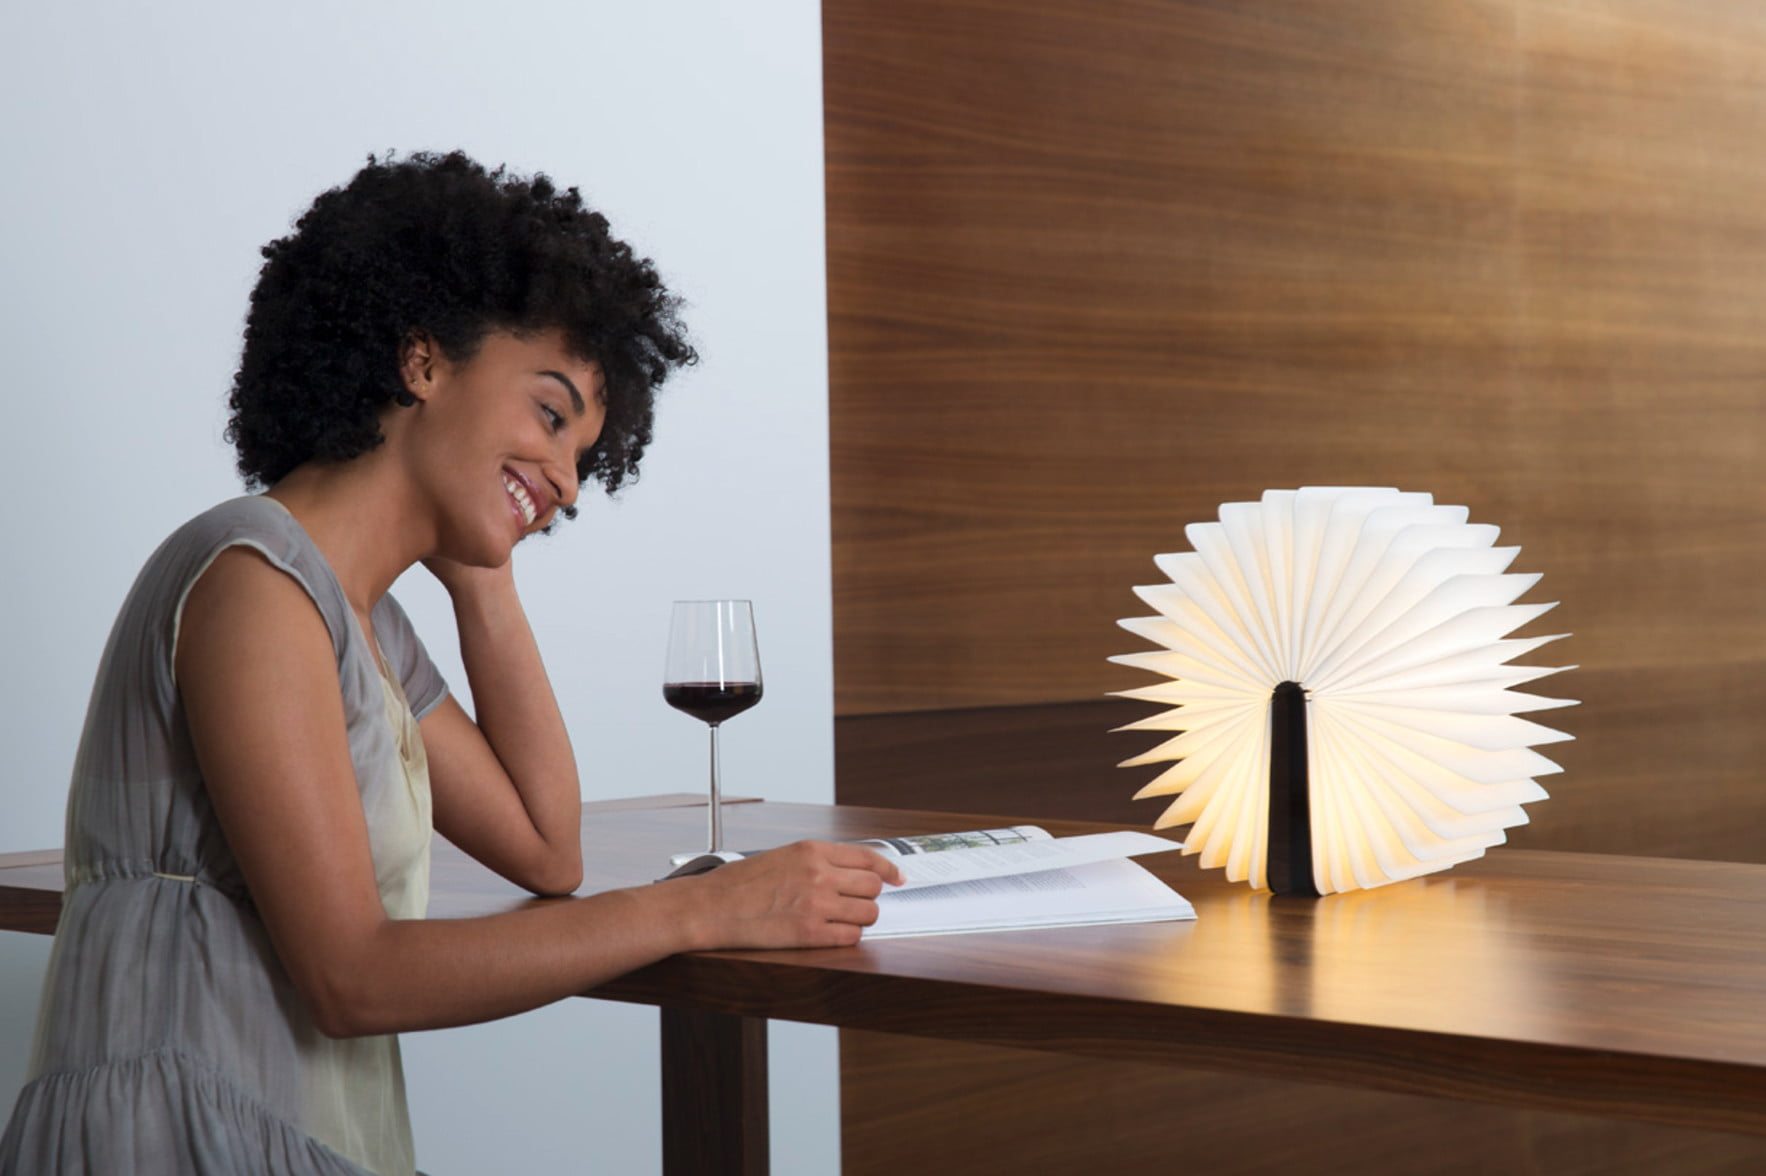 photos of amazing lamps and lights lumio 3